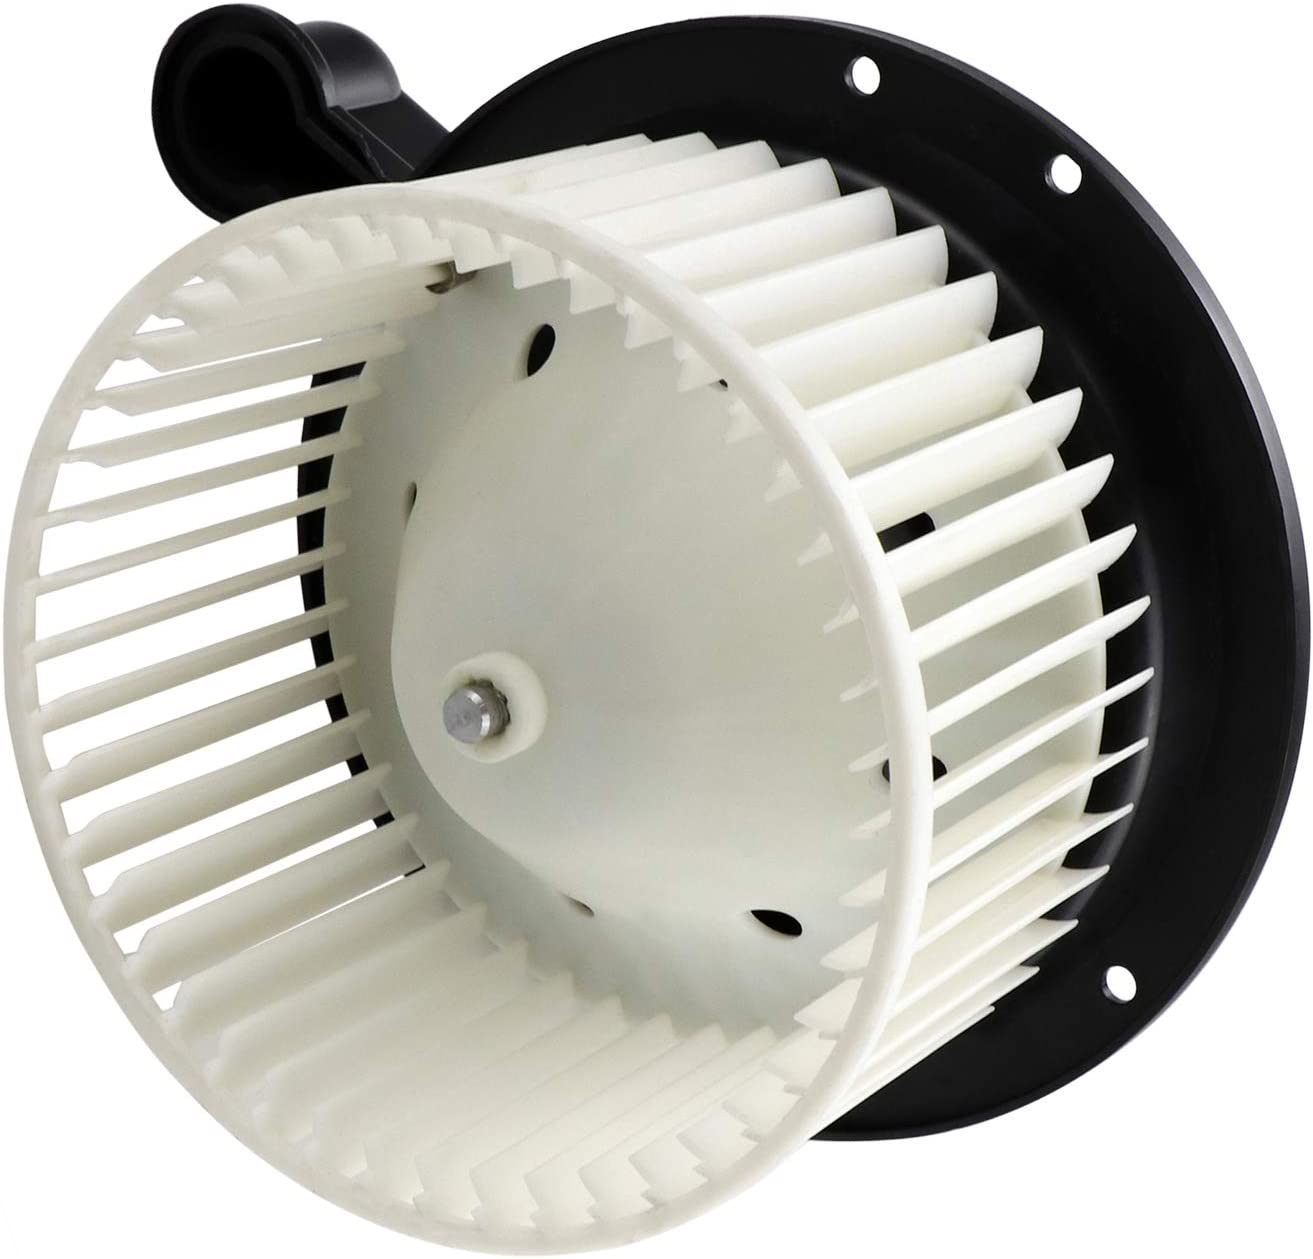 HVAC Blower Motor with Fan Cage 700020 Fit For 2002-2005 Ford Explorer 2002-2003 Ford Explorer Sport Trac Replaces 1L2Z 19805 EB 2002-2005 Mercury Mountaineer